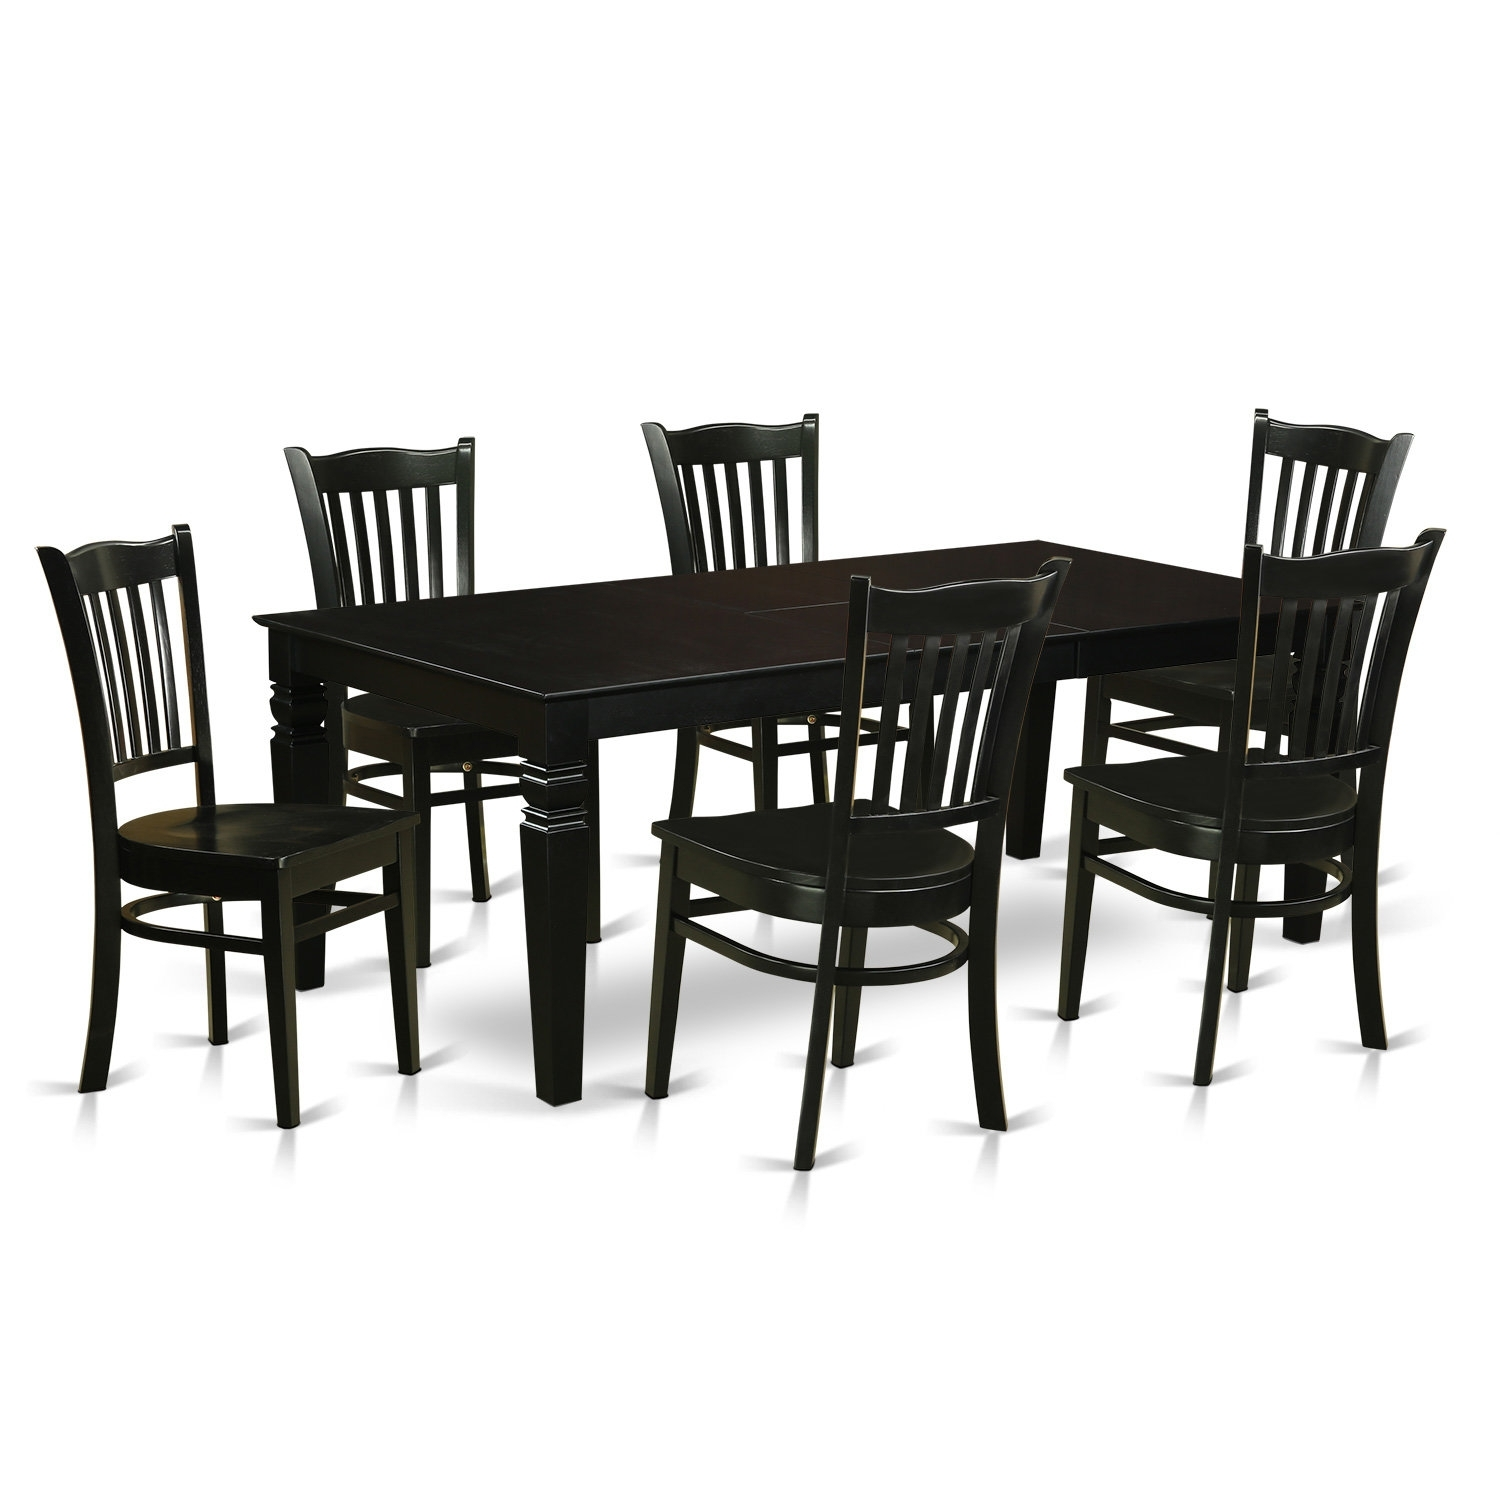 Darby Home Co Beldin 7 Piece Dining Set | Wayfair For Recent Candice Ii 7 Piece Extension Rectangle Dining Sets (Photo 3 of 20)